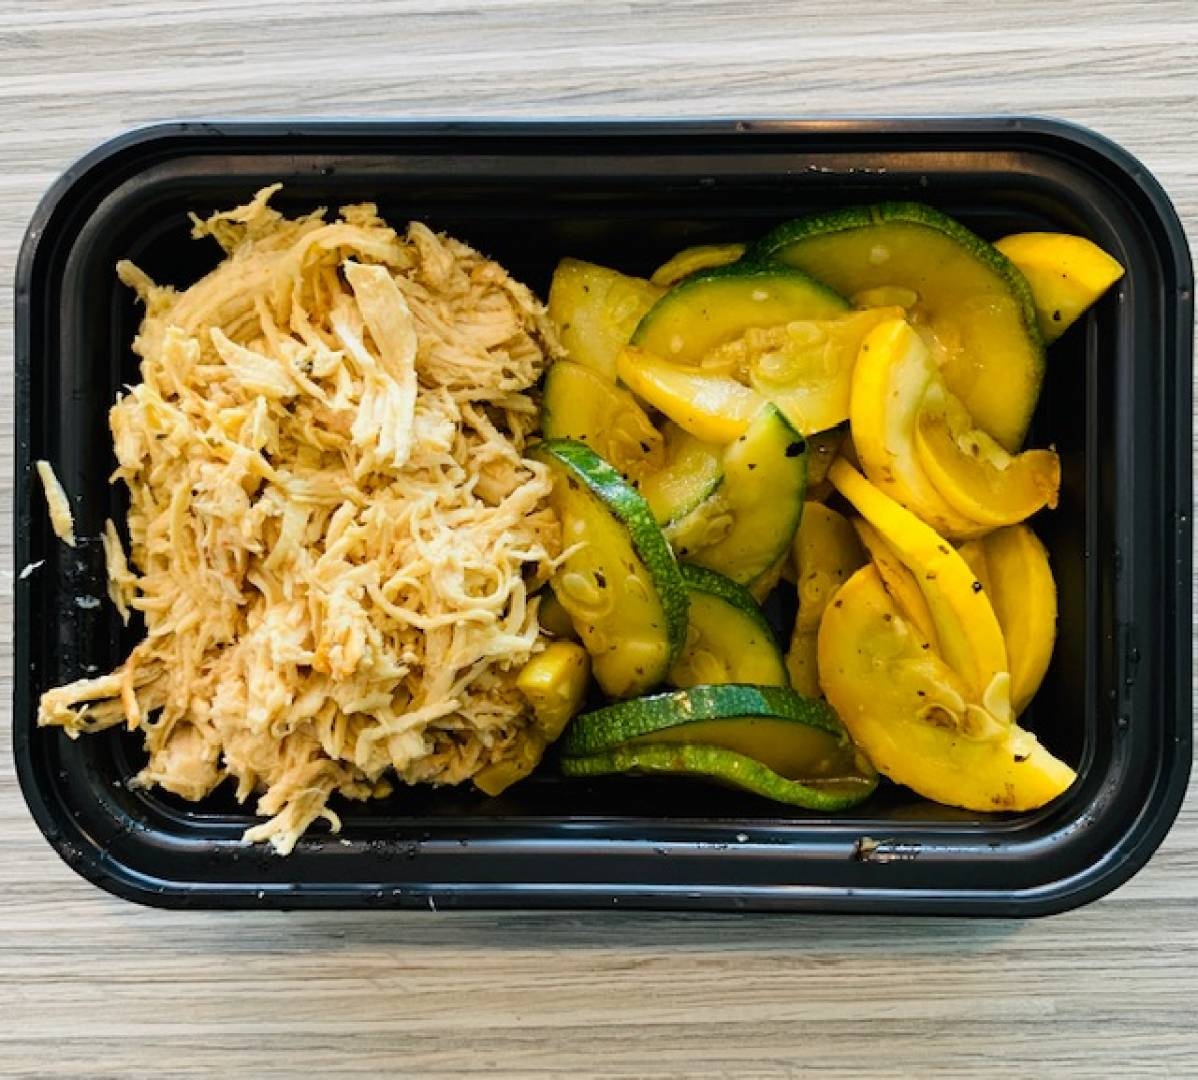 Shredded Chicken, Zucchini and Squash